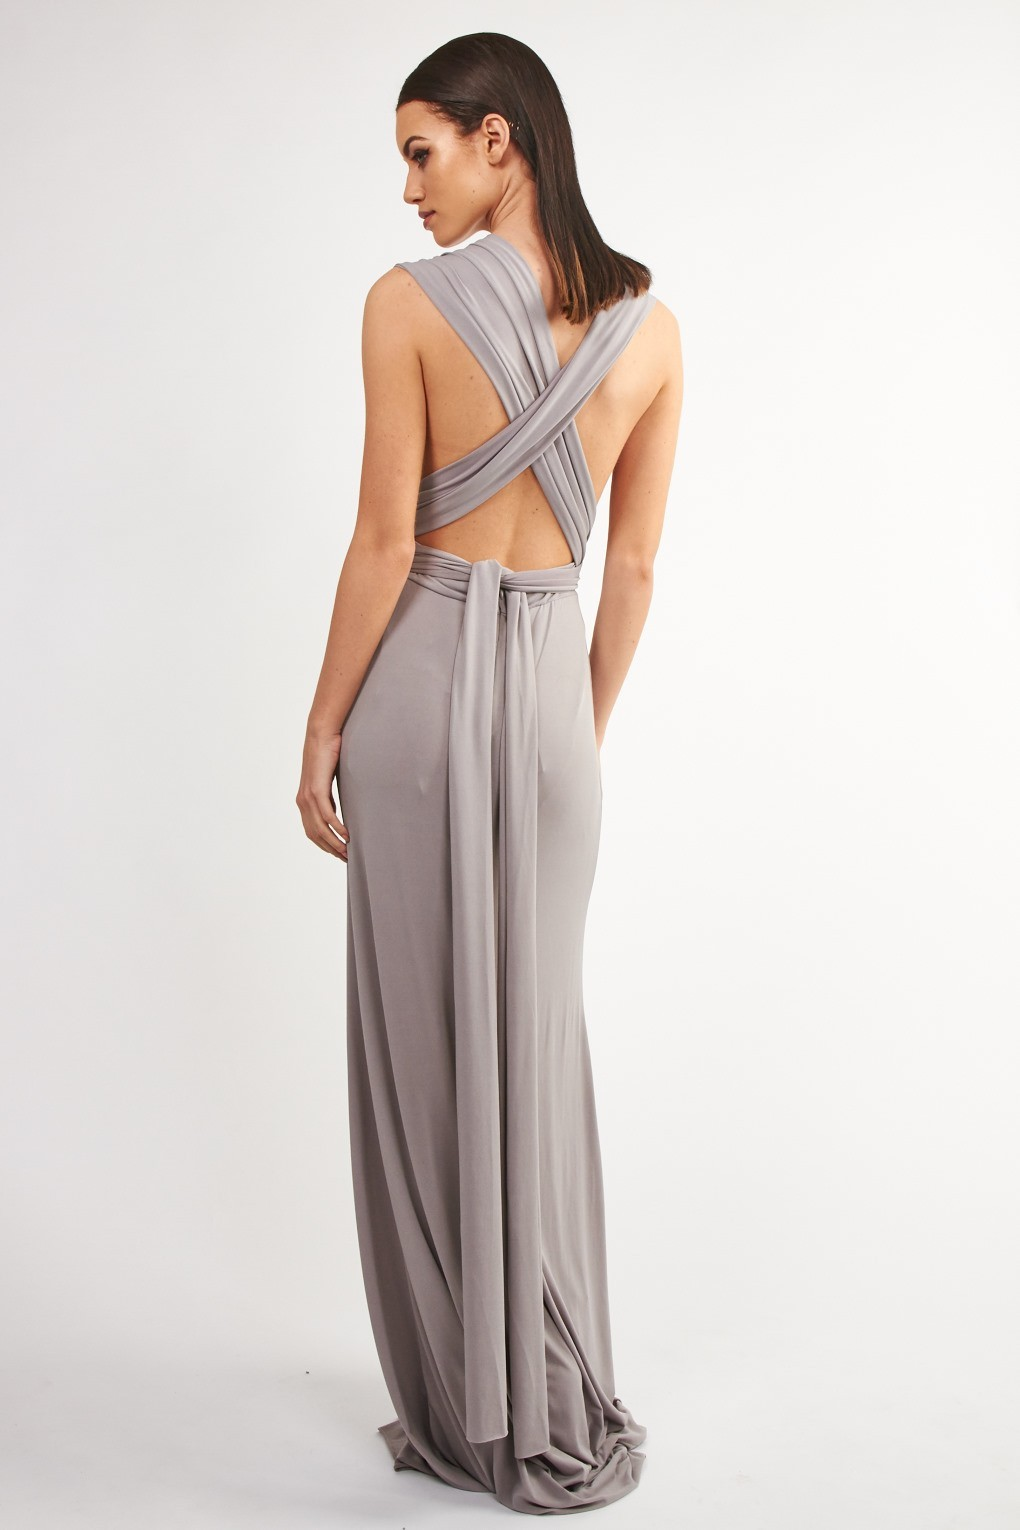 Tfnc Multi Way Grey Maxi Dress Tfnc Party Dresses